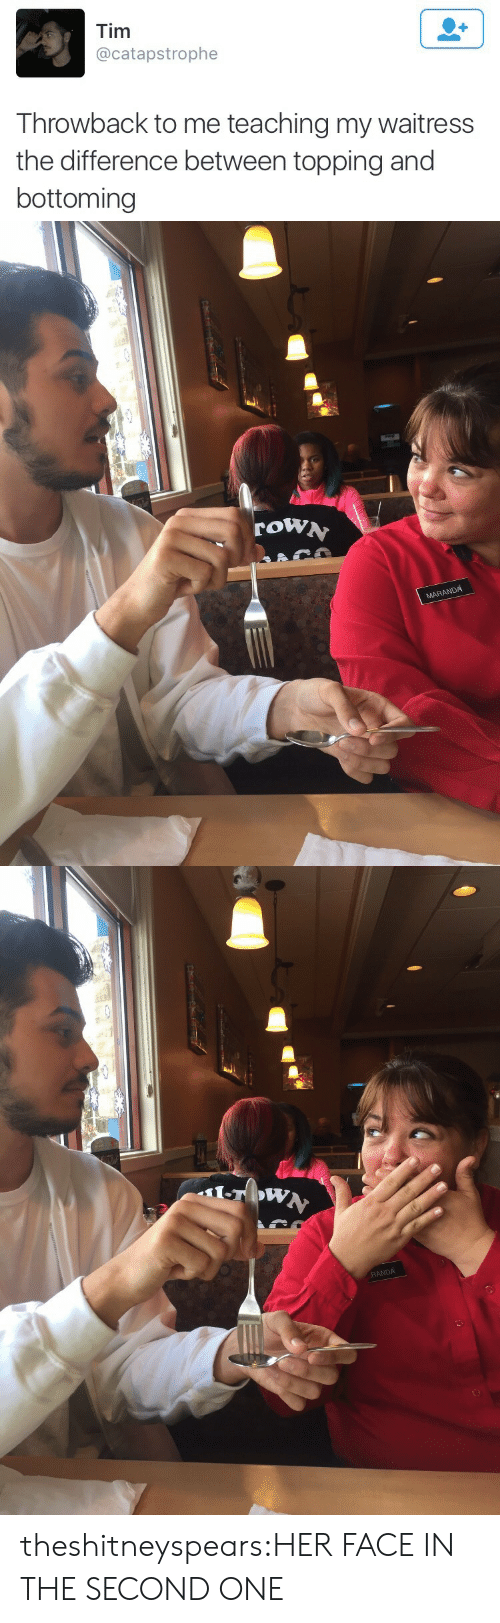 Target, Tumblr, and Blog: Tim  @catapstrophe  Throwback to me teaching my waitress  the difference between topping and  bottoming   row  MARANDA   RANDA theshitneyspears:HER FACE IN THE SECOND ONE